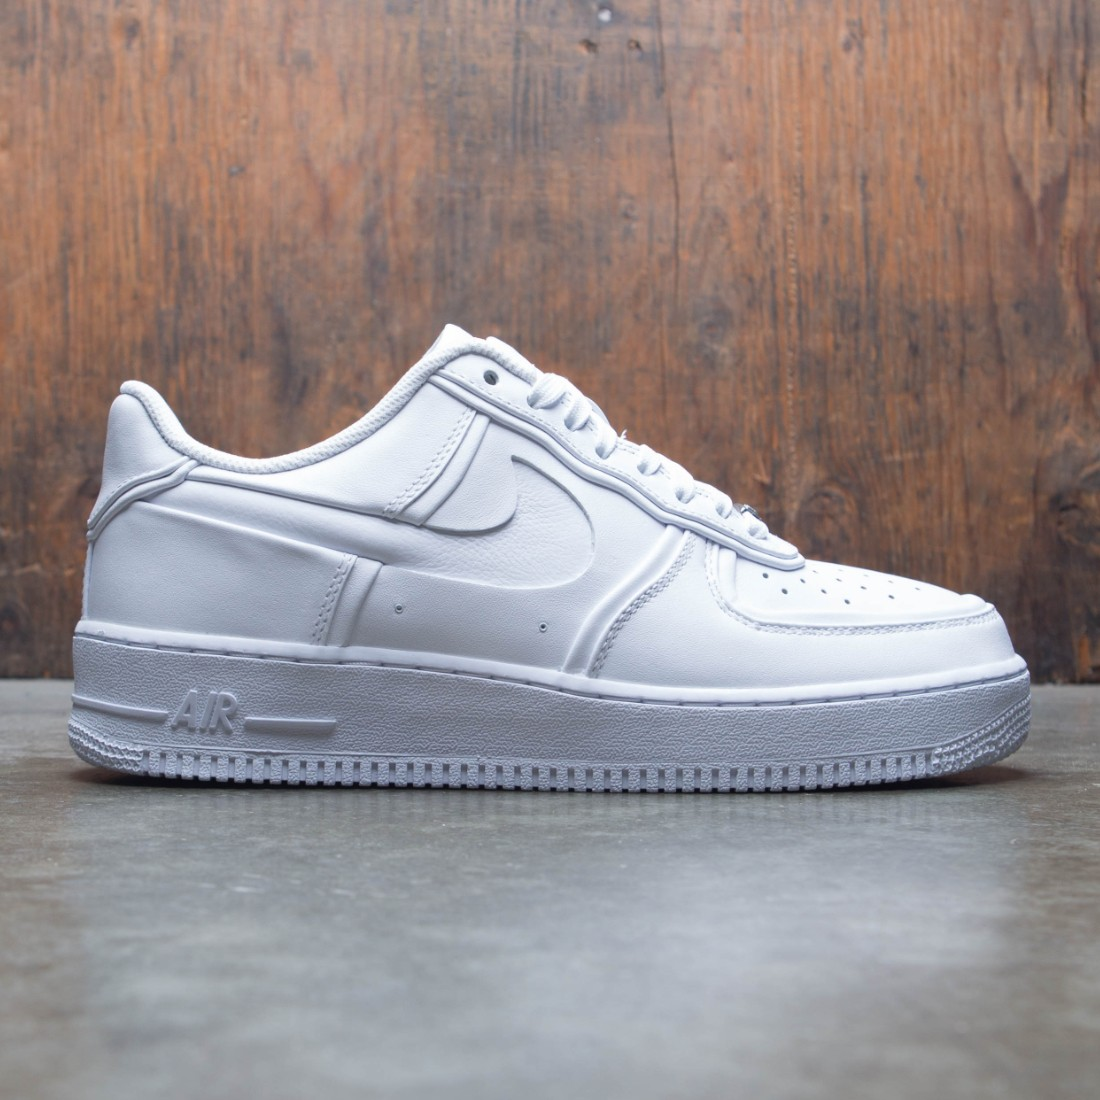 d73f9e88fdc17 nike men air force 1 low john elliott white